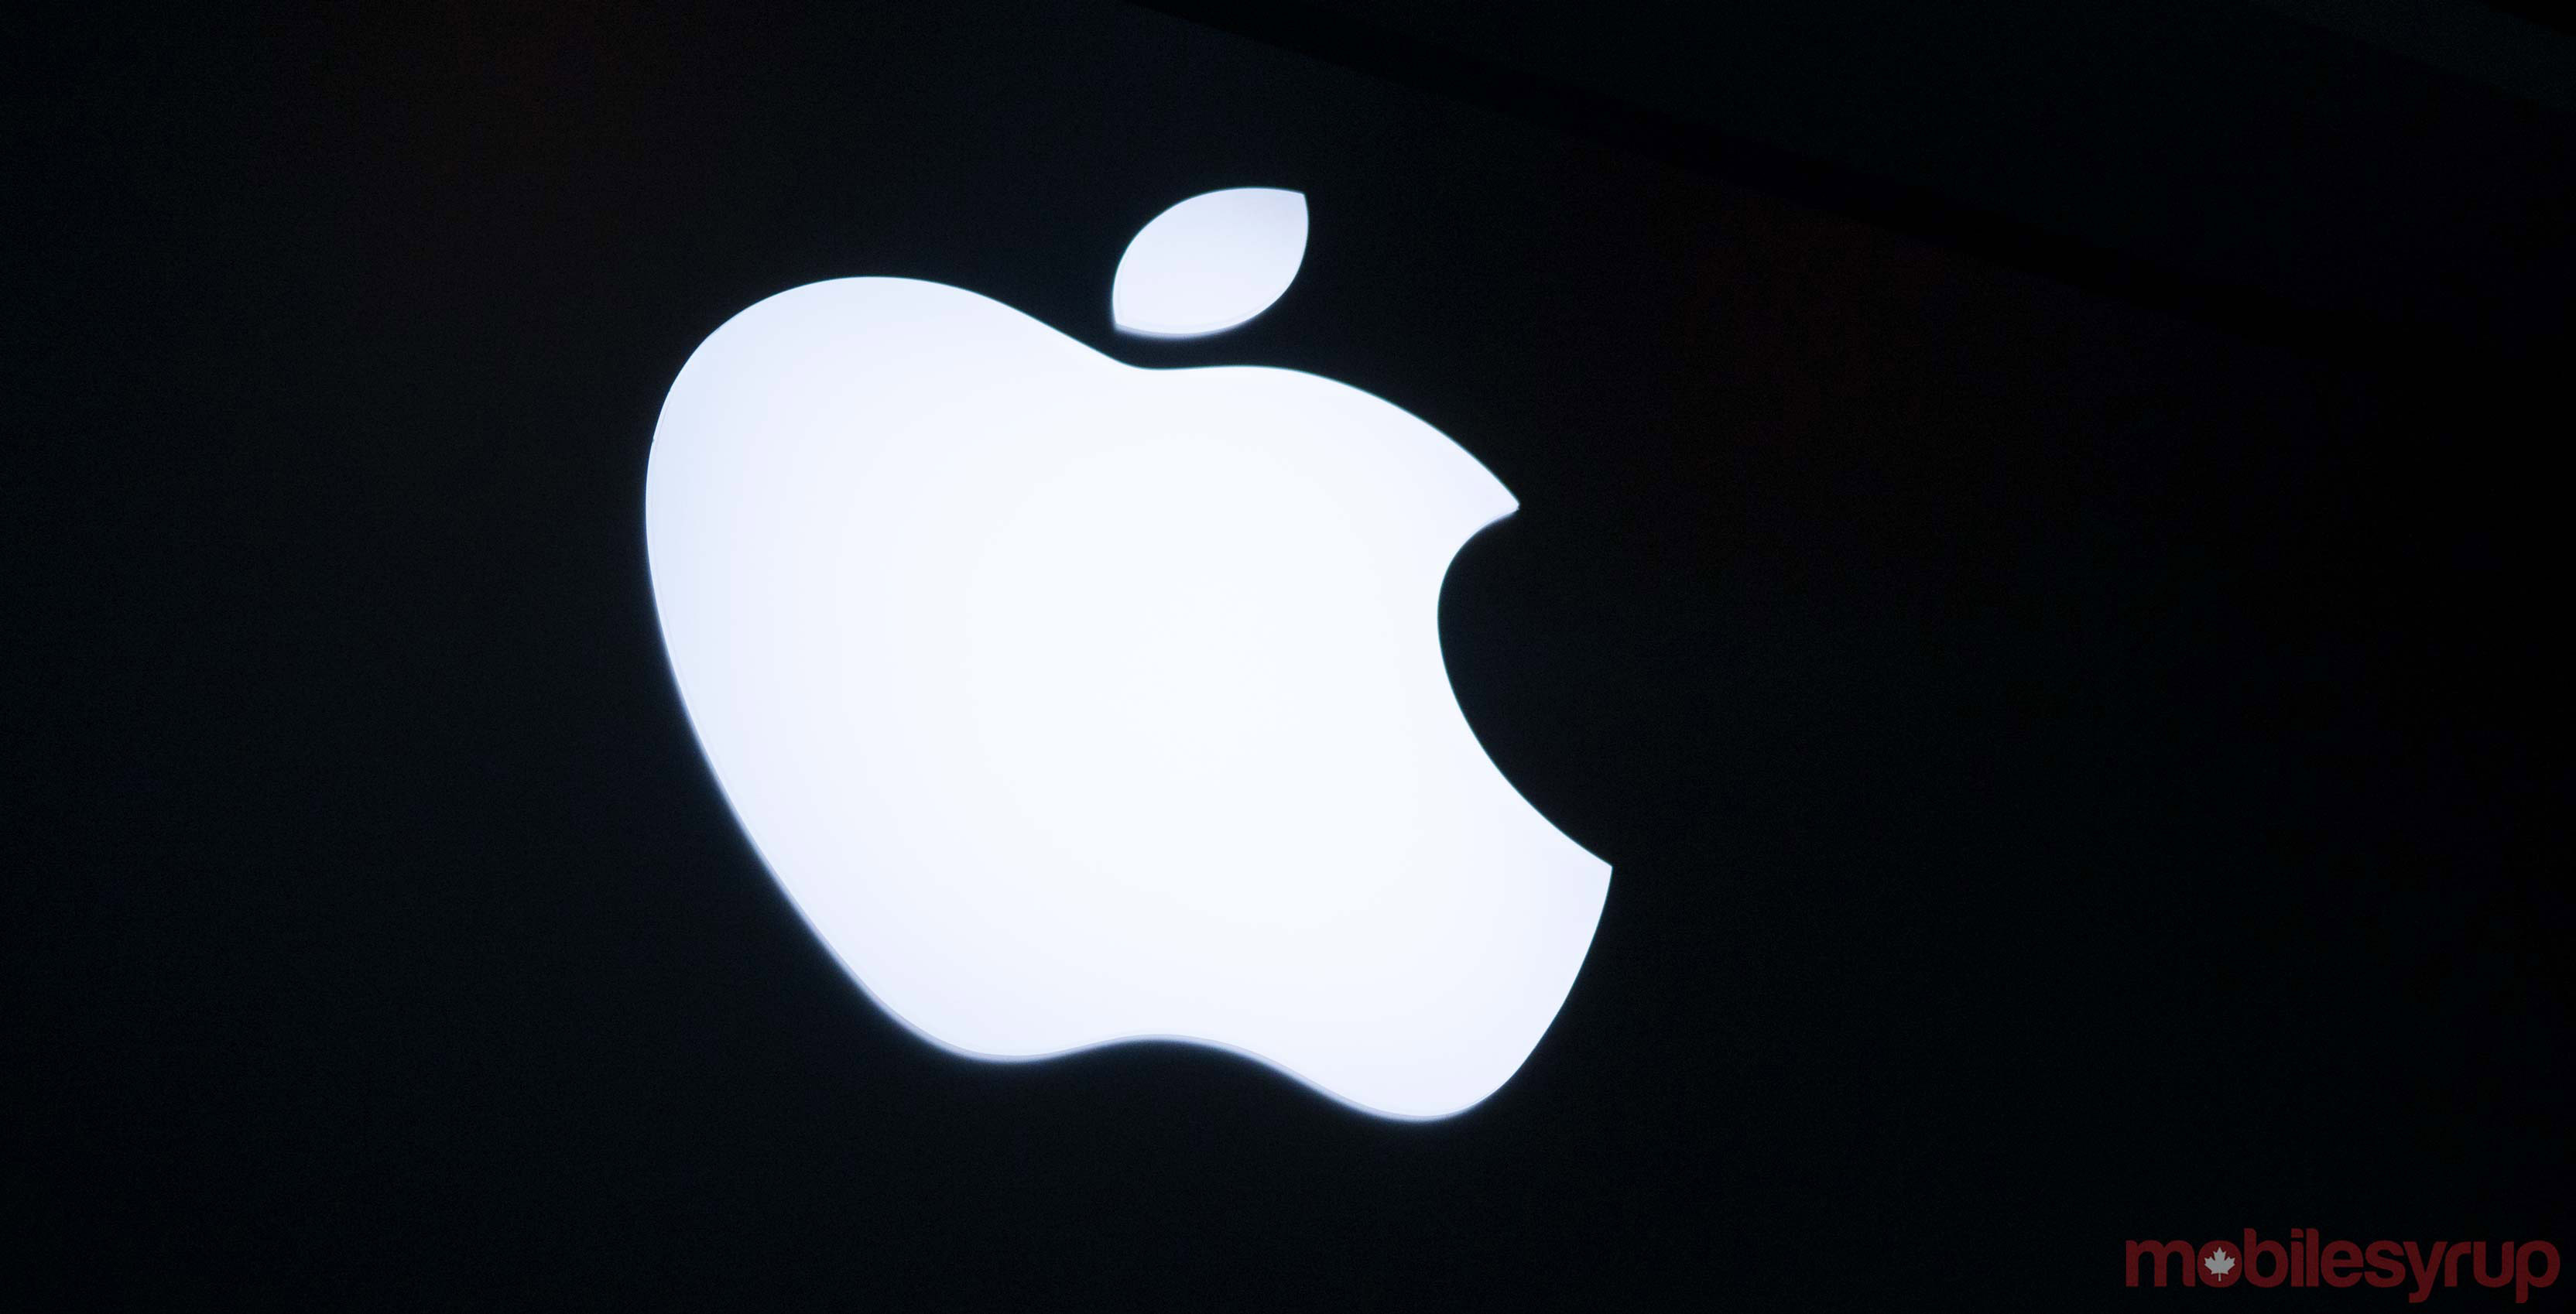 Apple Korea names former Samsung exec as new head